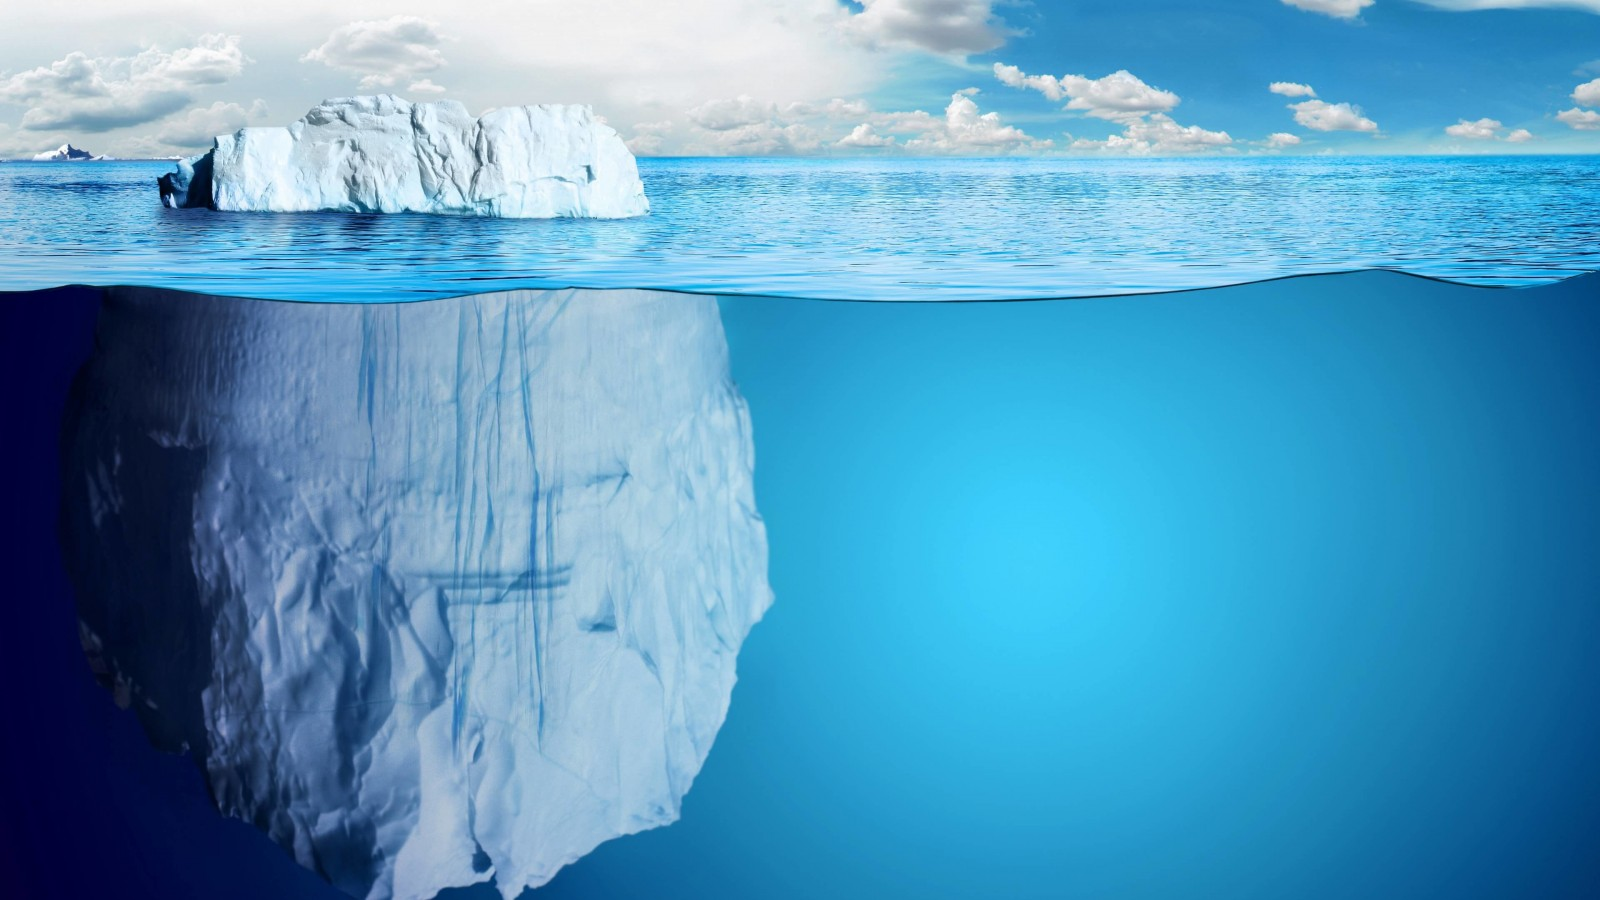 The invisible part of the iceberg Wallpaper for Desktop 1600x900